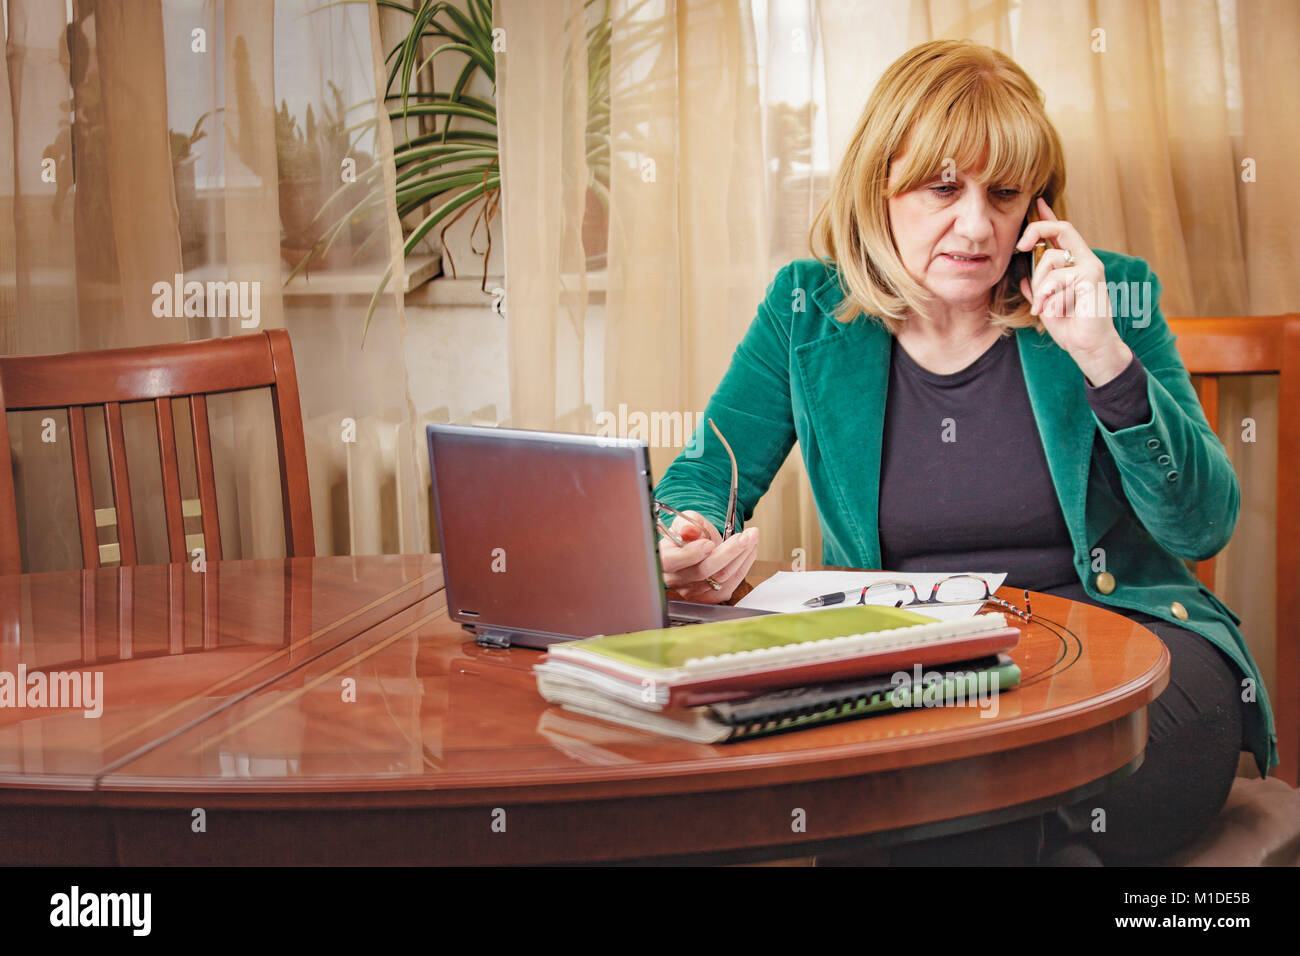 Elderly lady discussing some serious matters - Stock Image